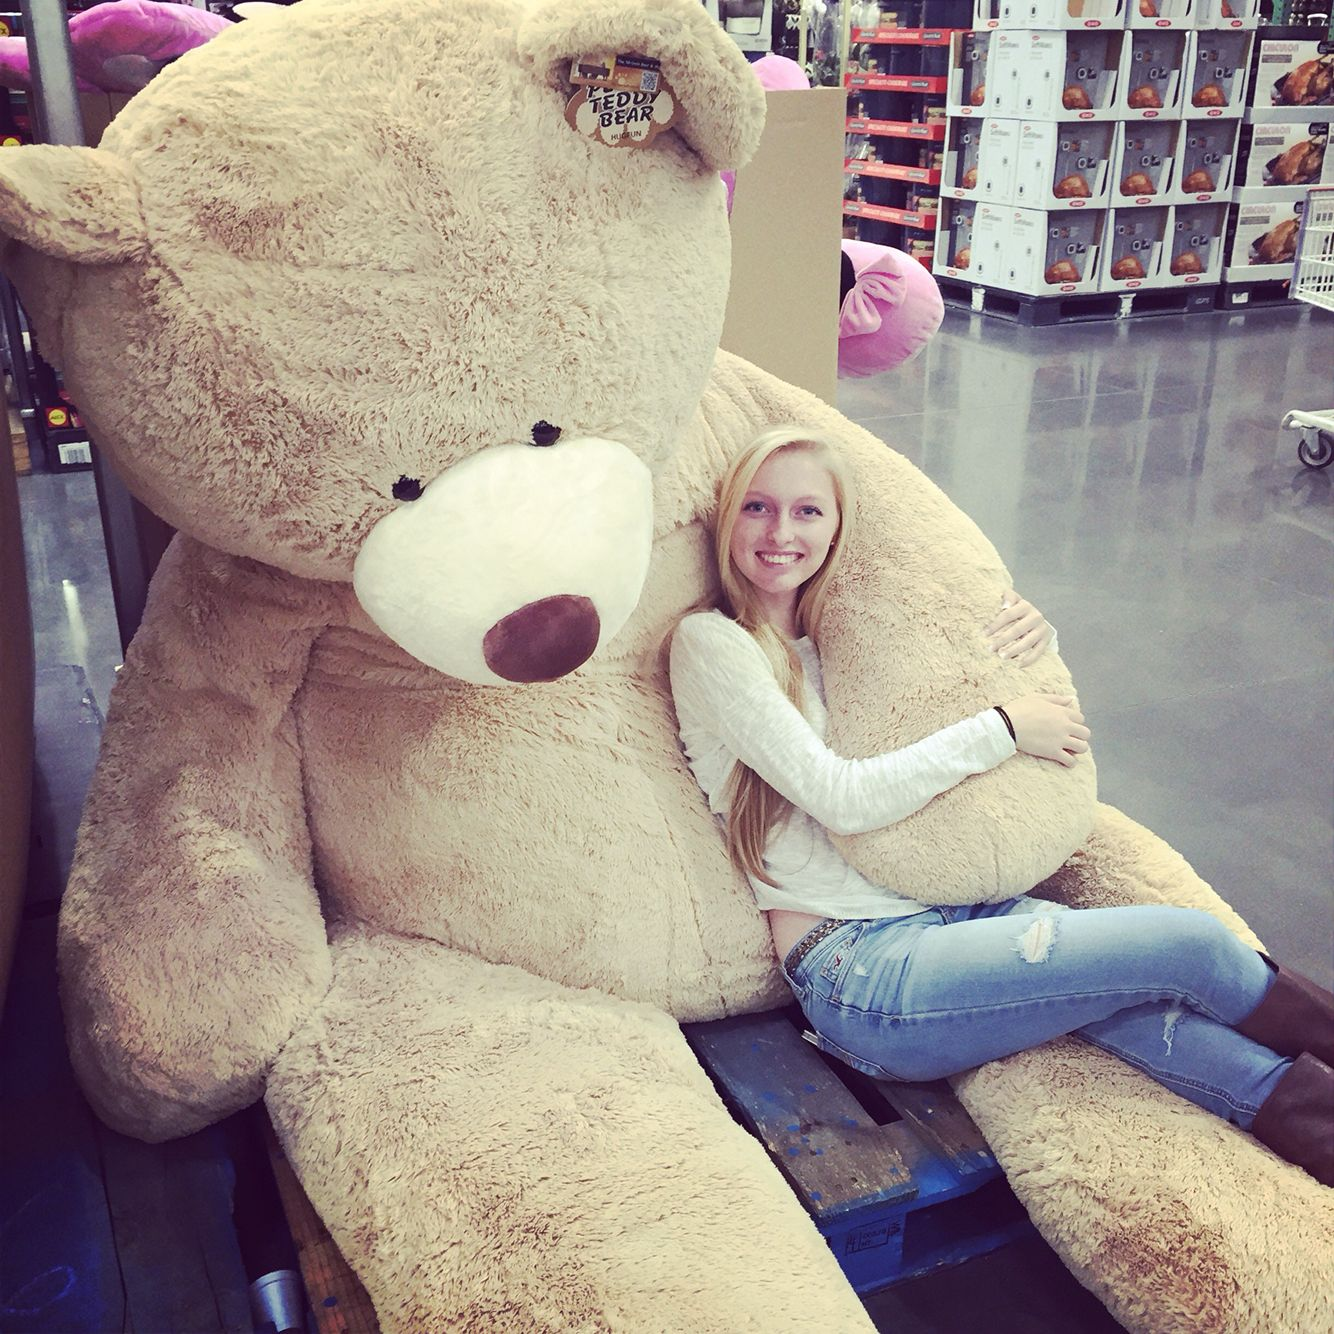 "93"" giant stuffed bear at Costco. Huge teddy bears"